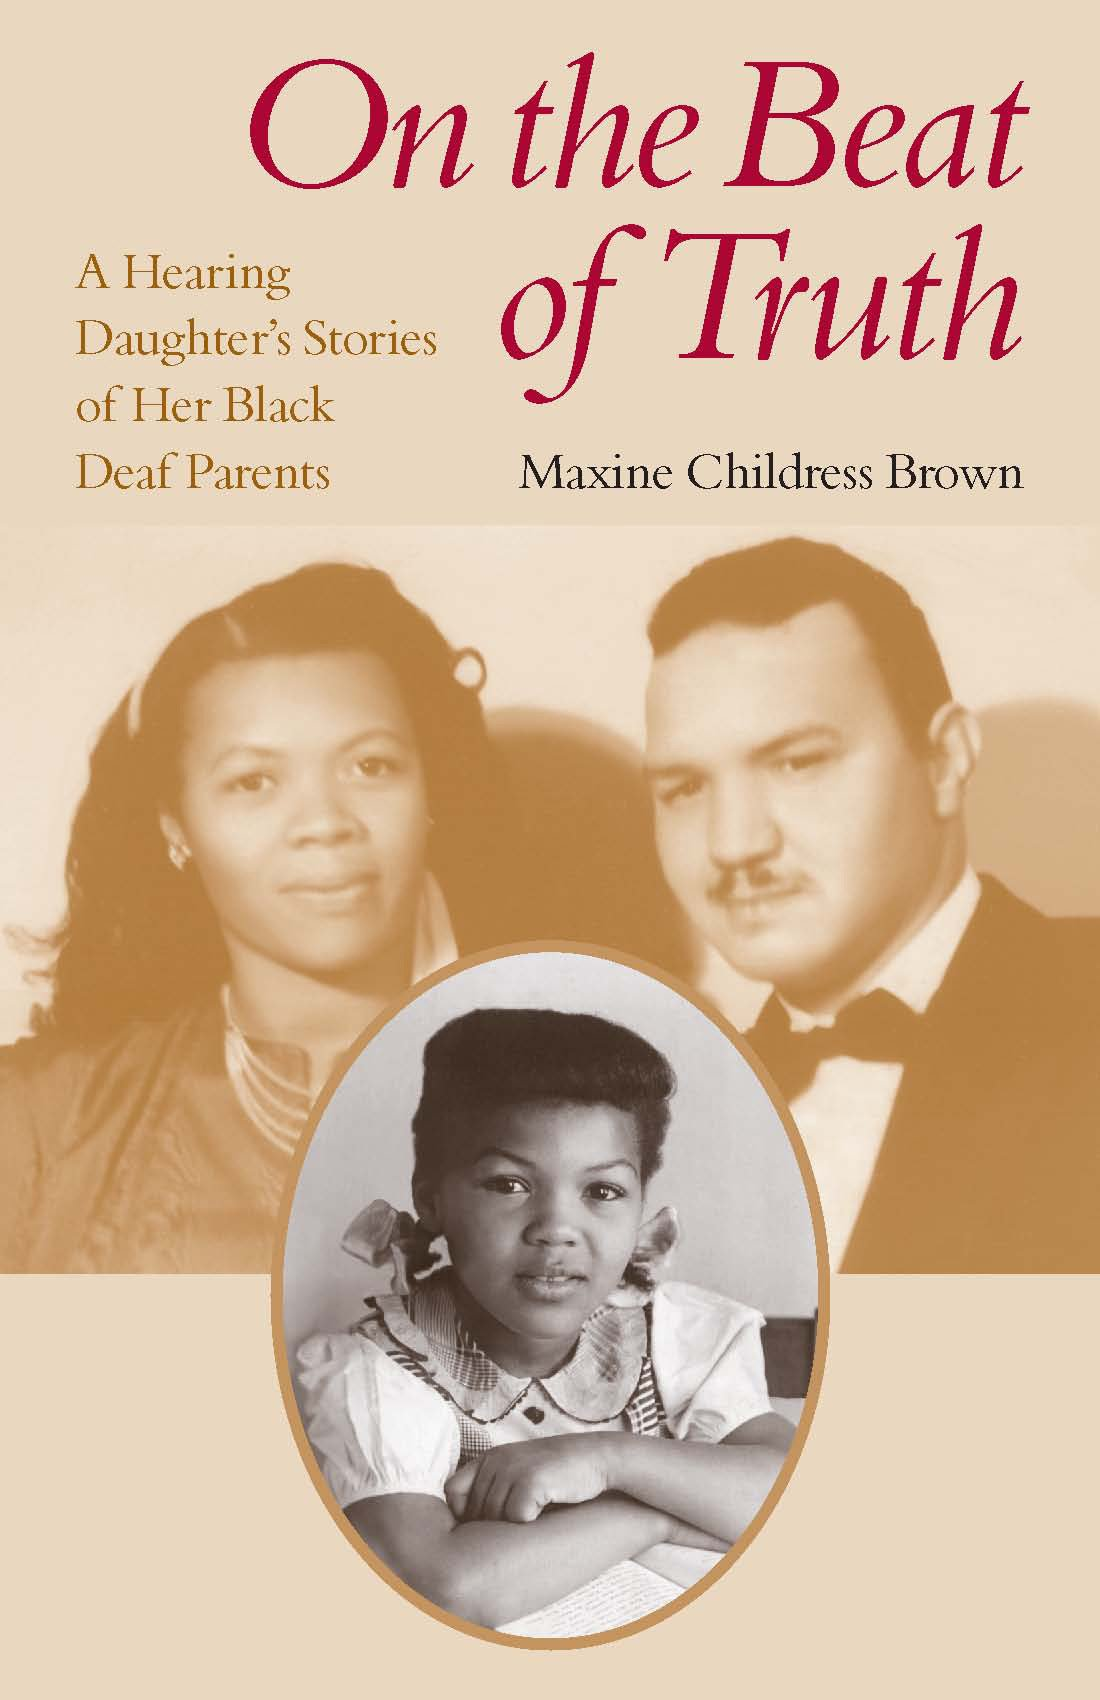 On the Beat of Truth: A Hearing Daughter's Stories of Her Black Deaf Parents